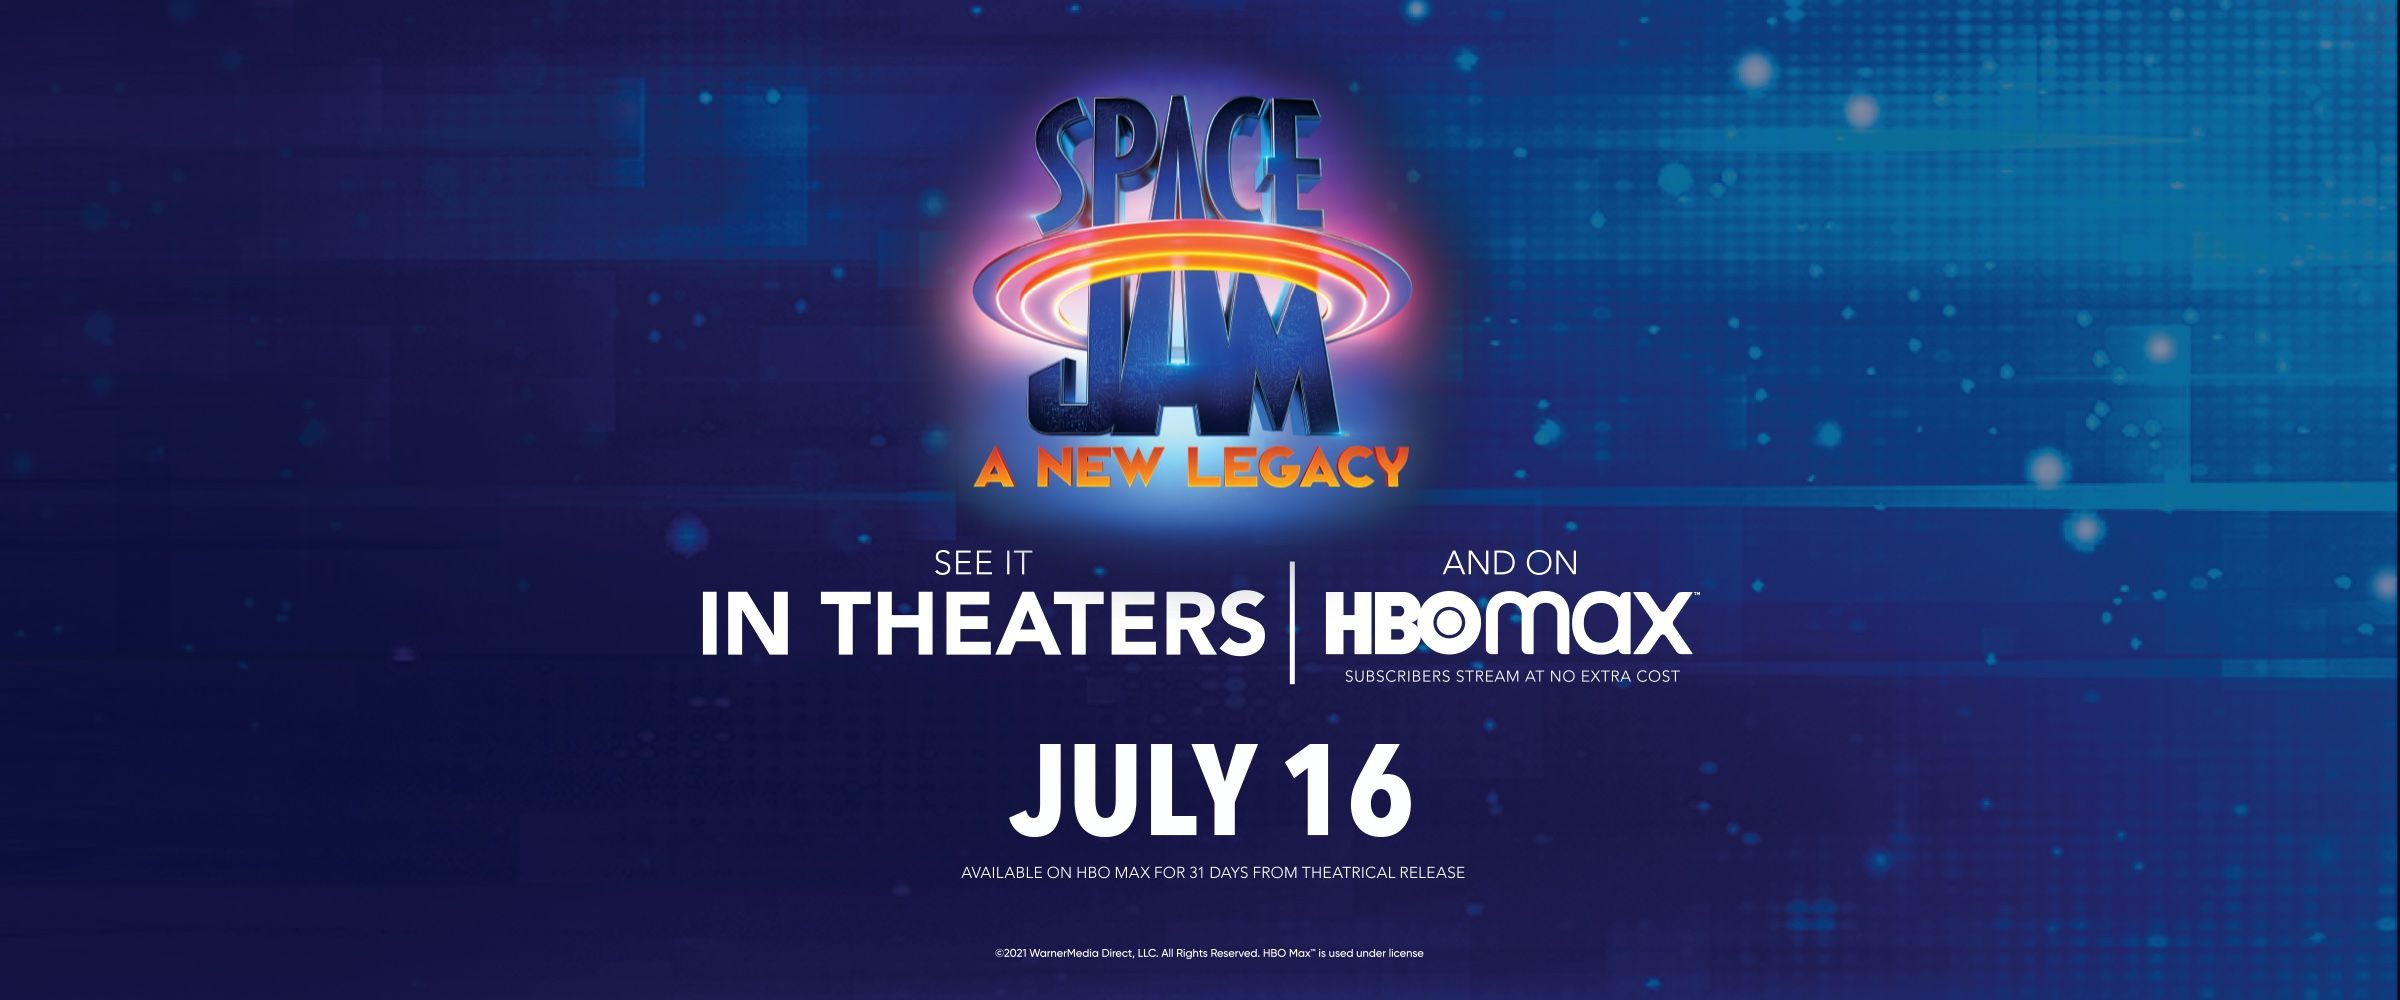 Space Jam: A New Legacy | In Theaters and on HBOMAX July 16